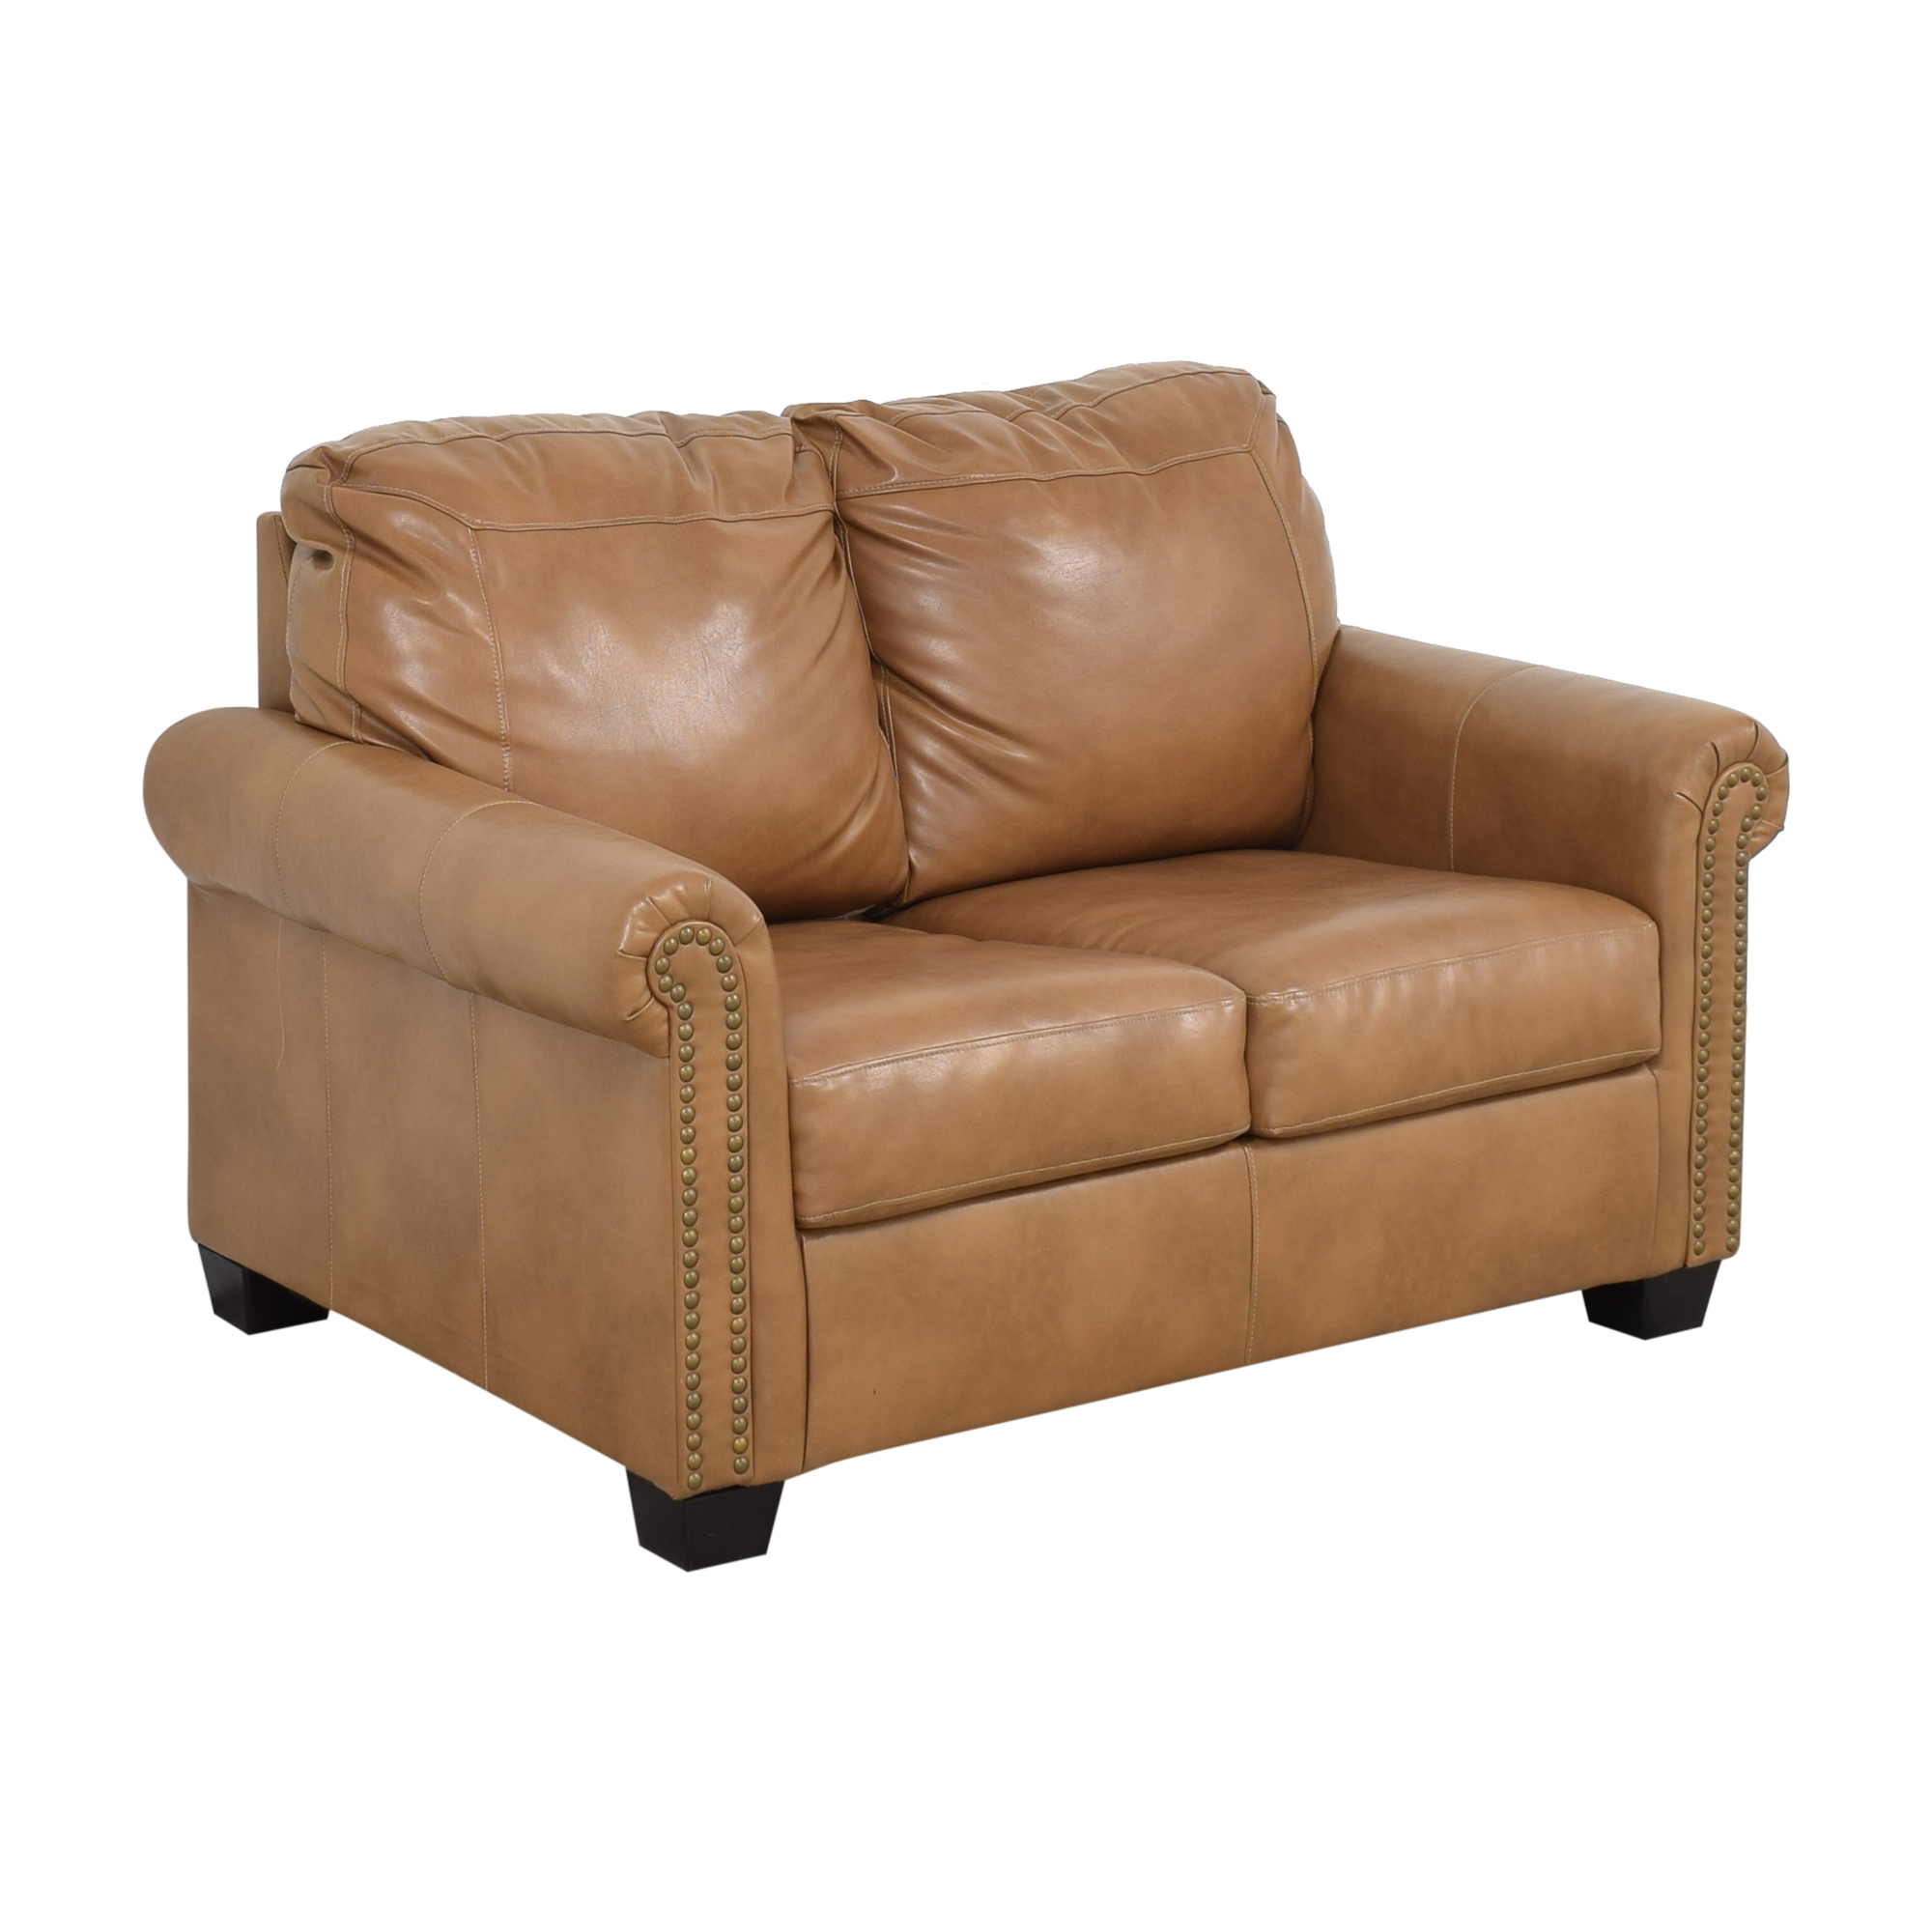 Overstock Overstock Caramel Leather Twin Pull Out Sofa used